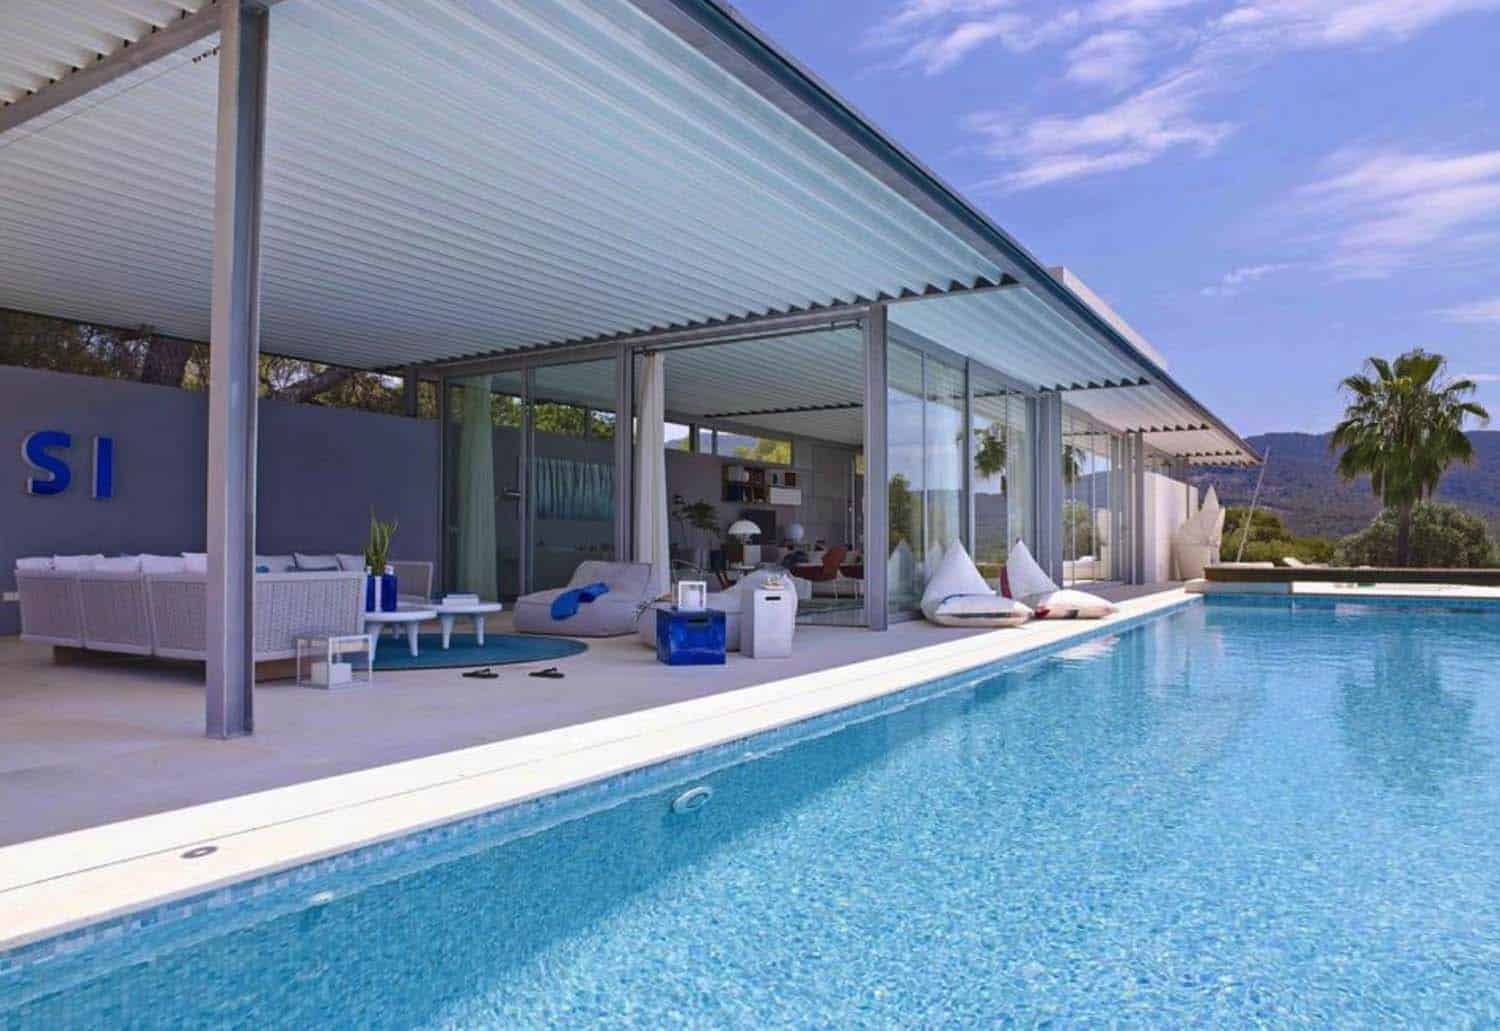 House in Ibiza-Melian Randolph-03-1 Kindesign